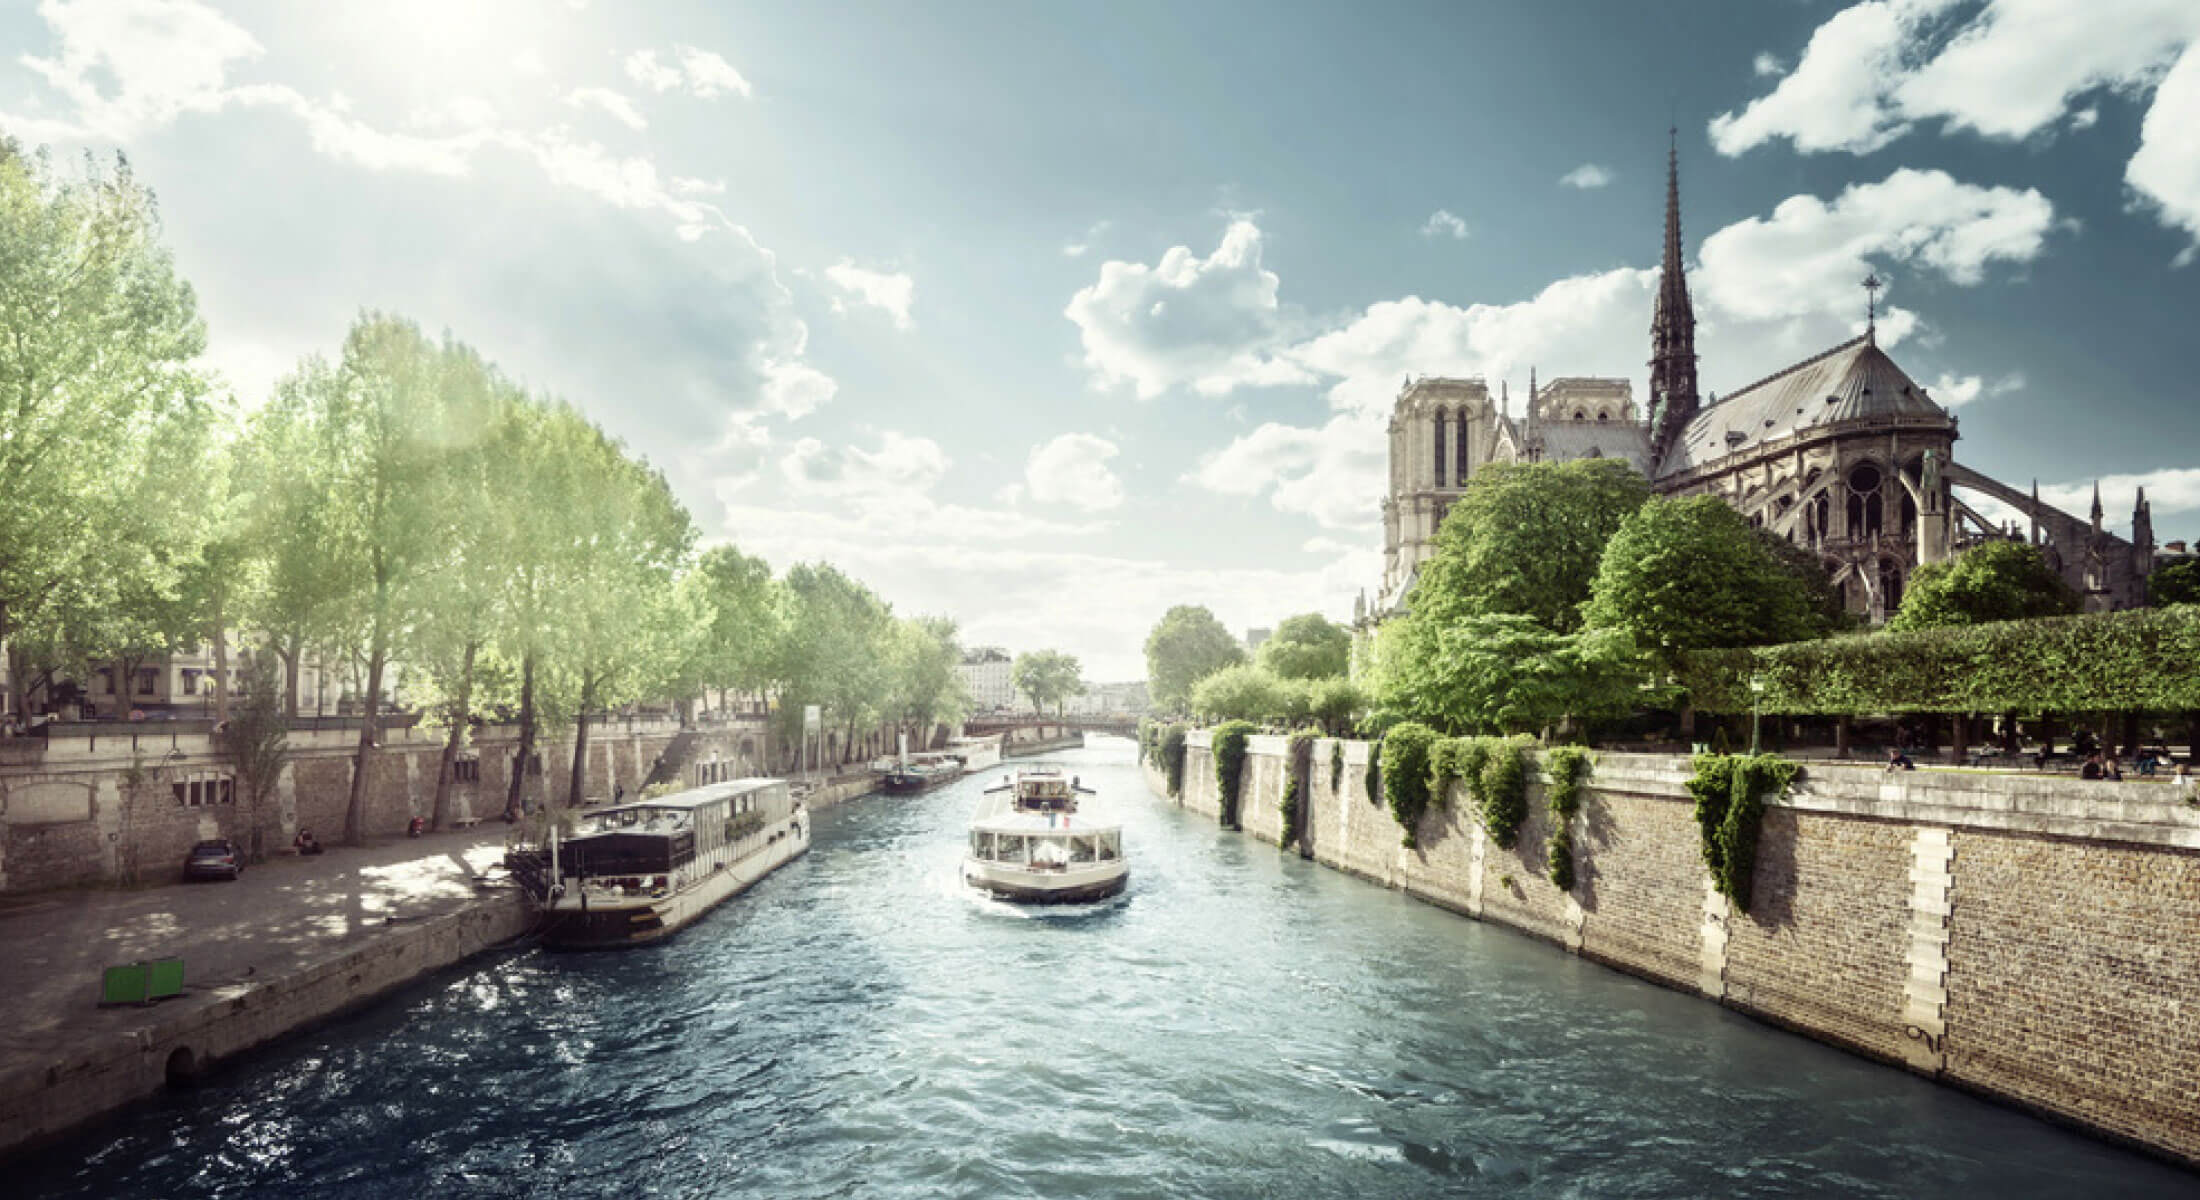 River boats on the Seine in Paris